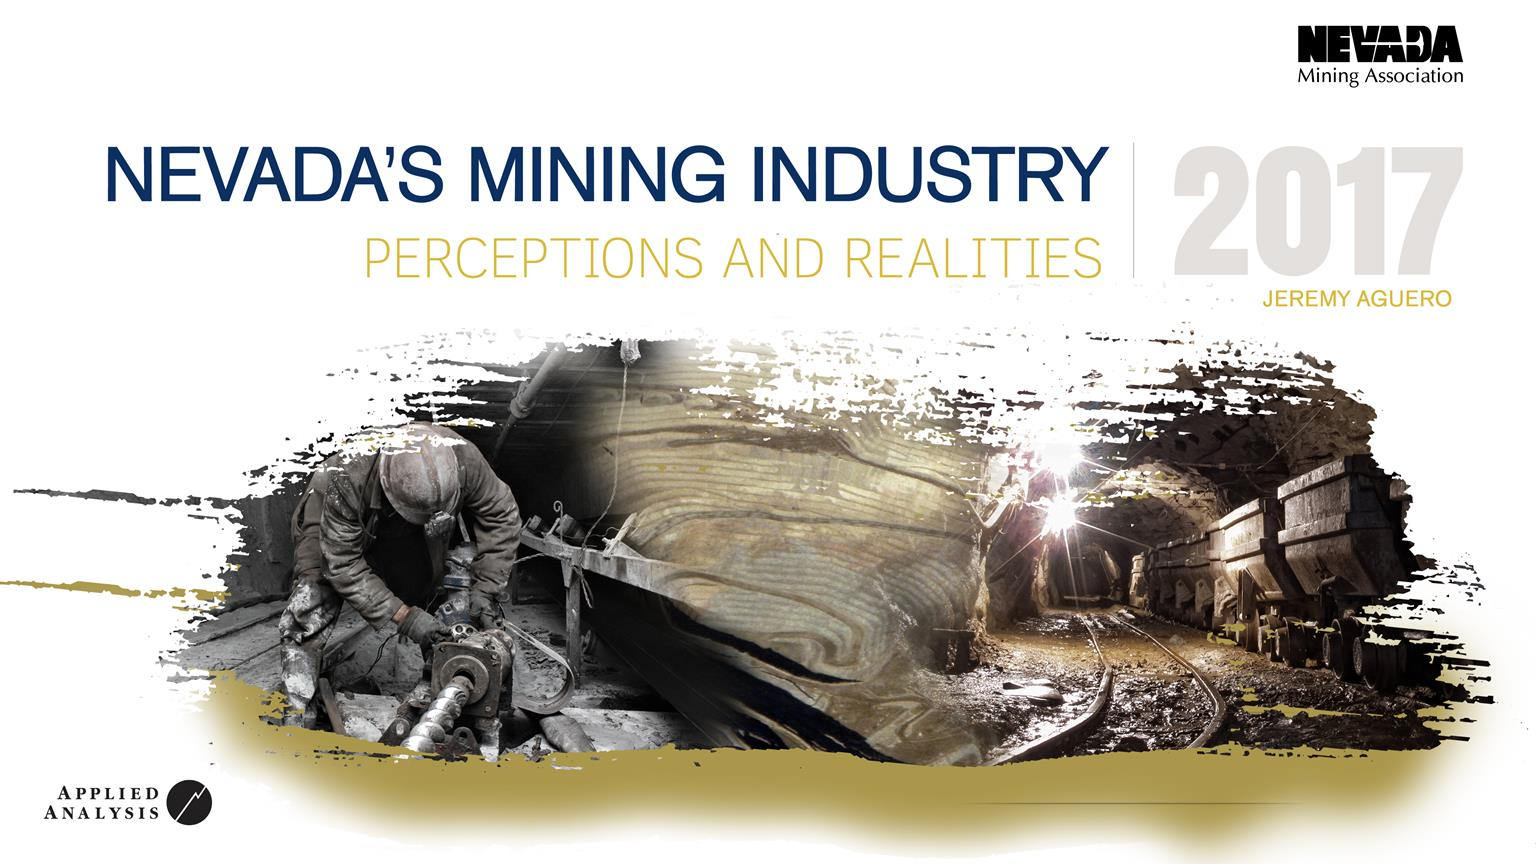 Nevada Mining Association Nevada's Mining Industry: Perceptions and Realitites